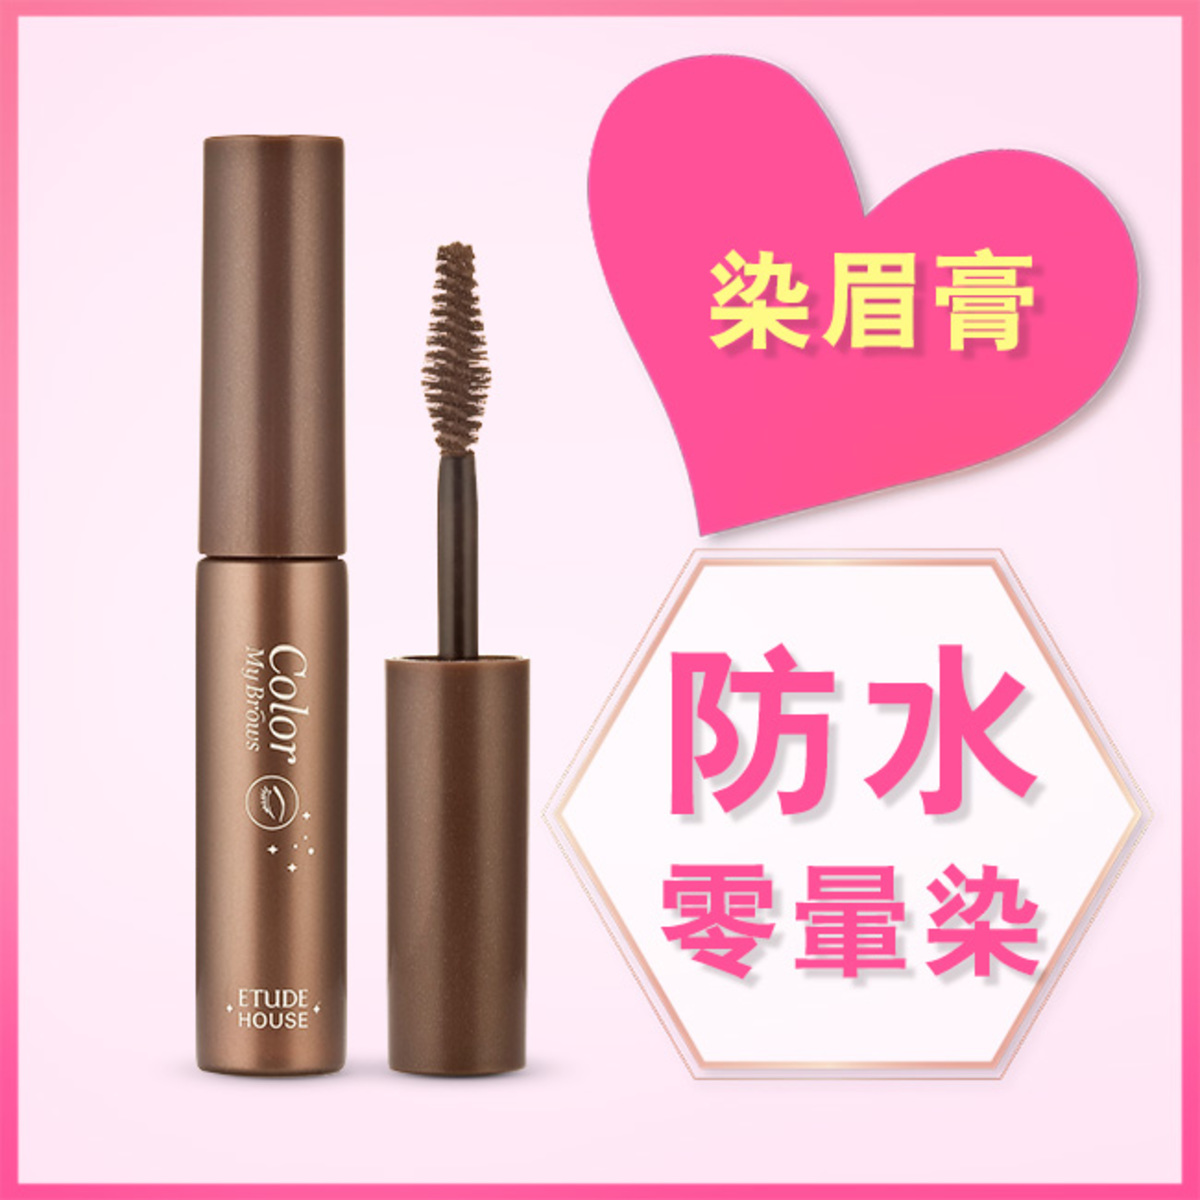 Etude House Color My Brows 01 45g Hktvmall Online Shopping Brow